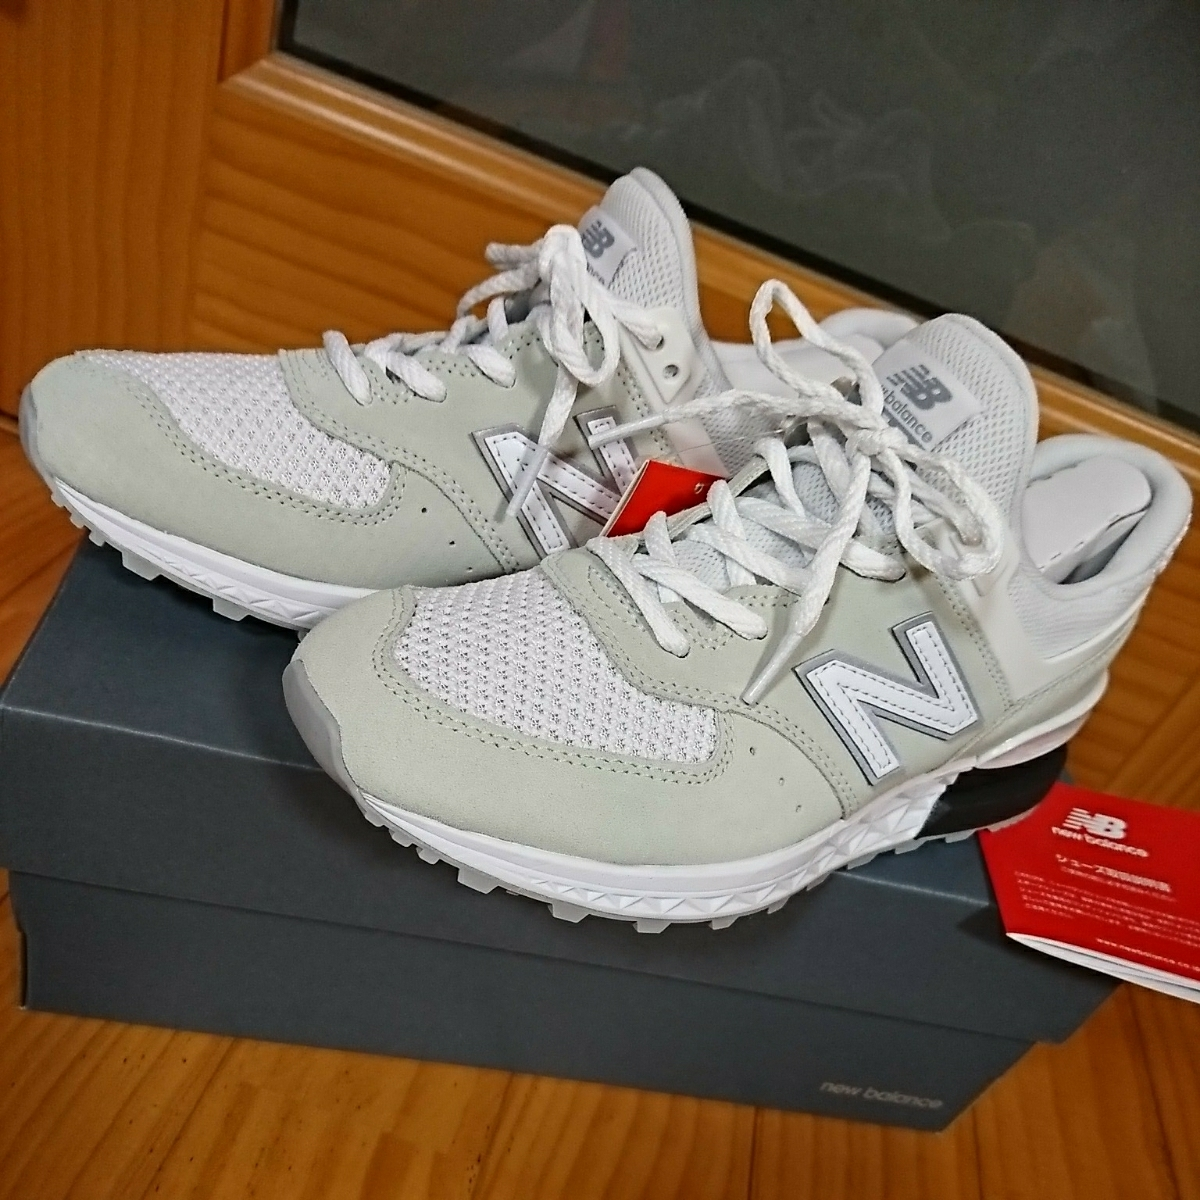 cheap for discount 3b28f 63a05 regular price 13392 jpy New balance MS 574 STW 24.5cm white ...